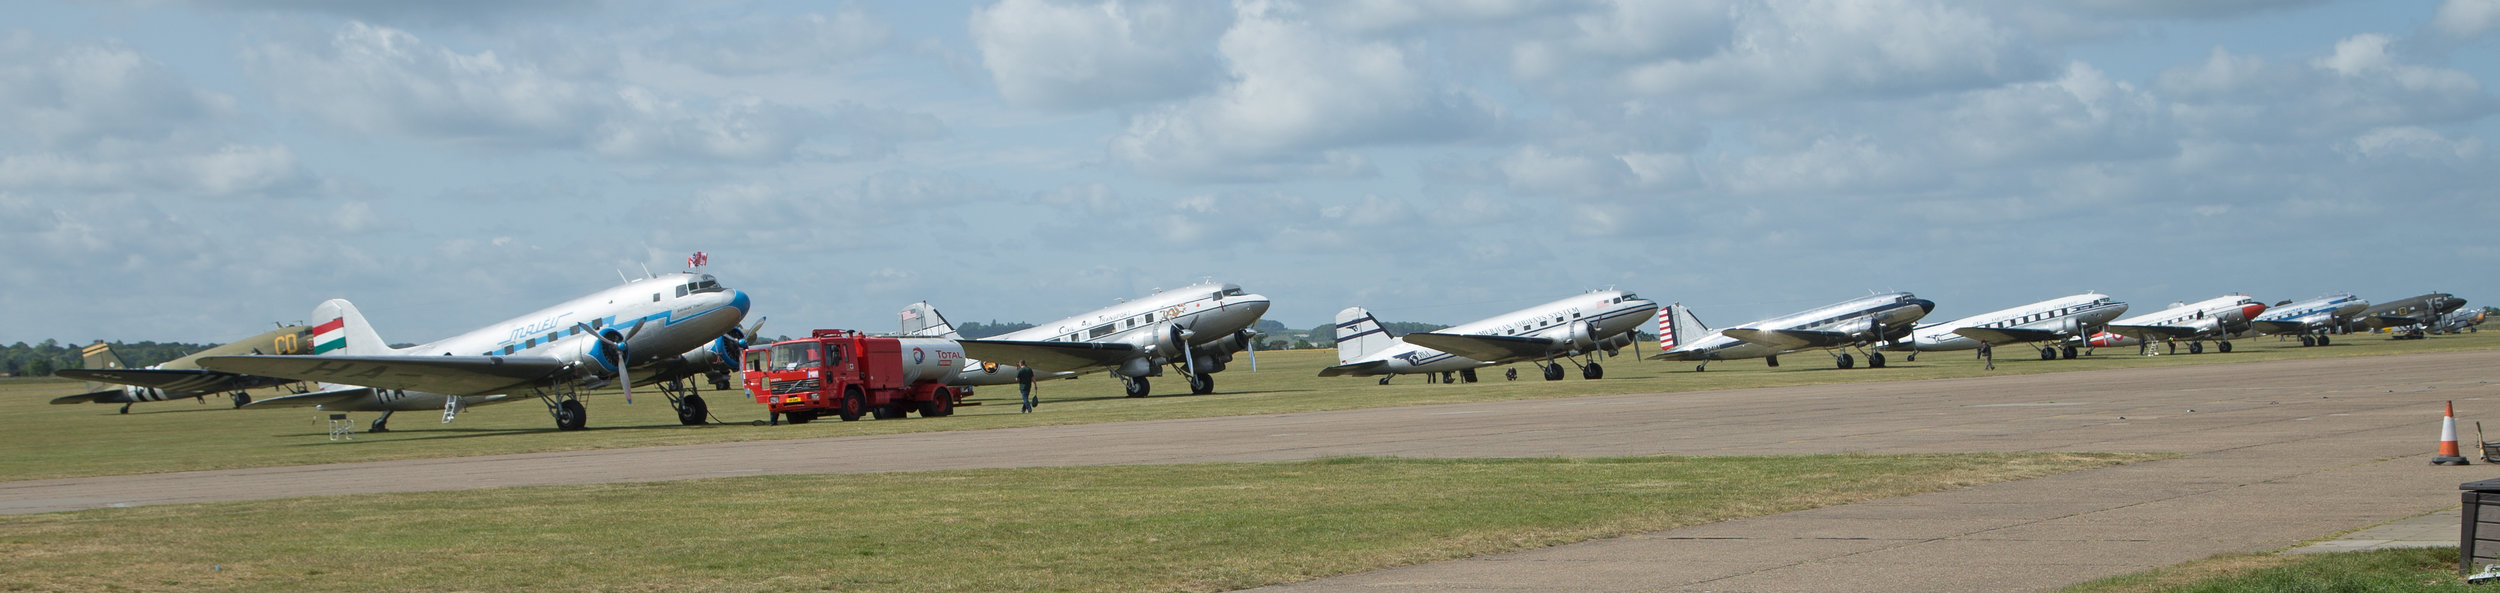 What a line up! Dakota's at Duxford. Photo: Peter Hampson 3rd June 2019.